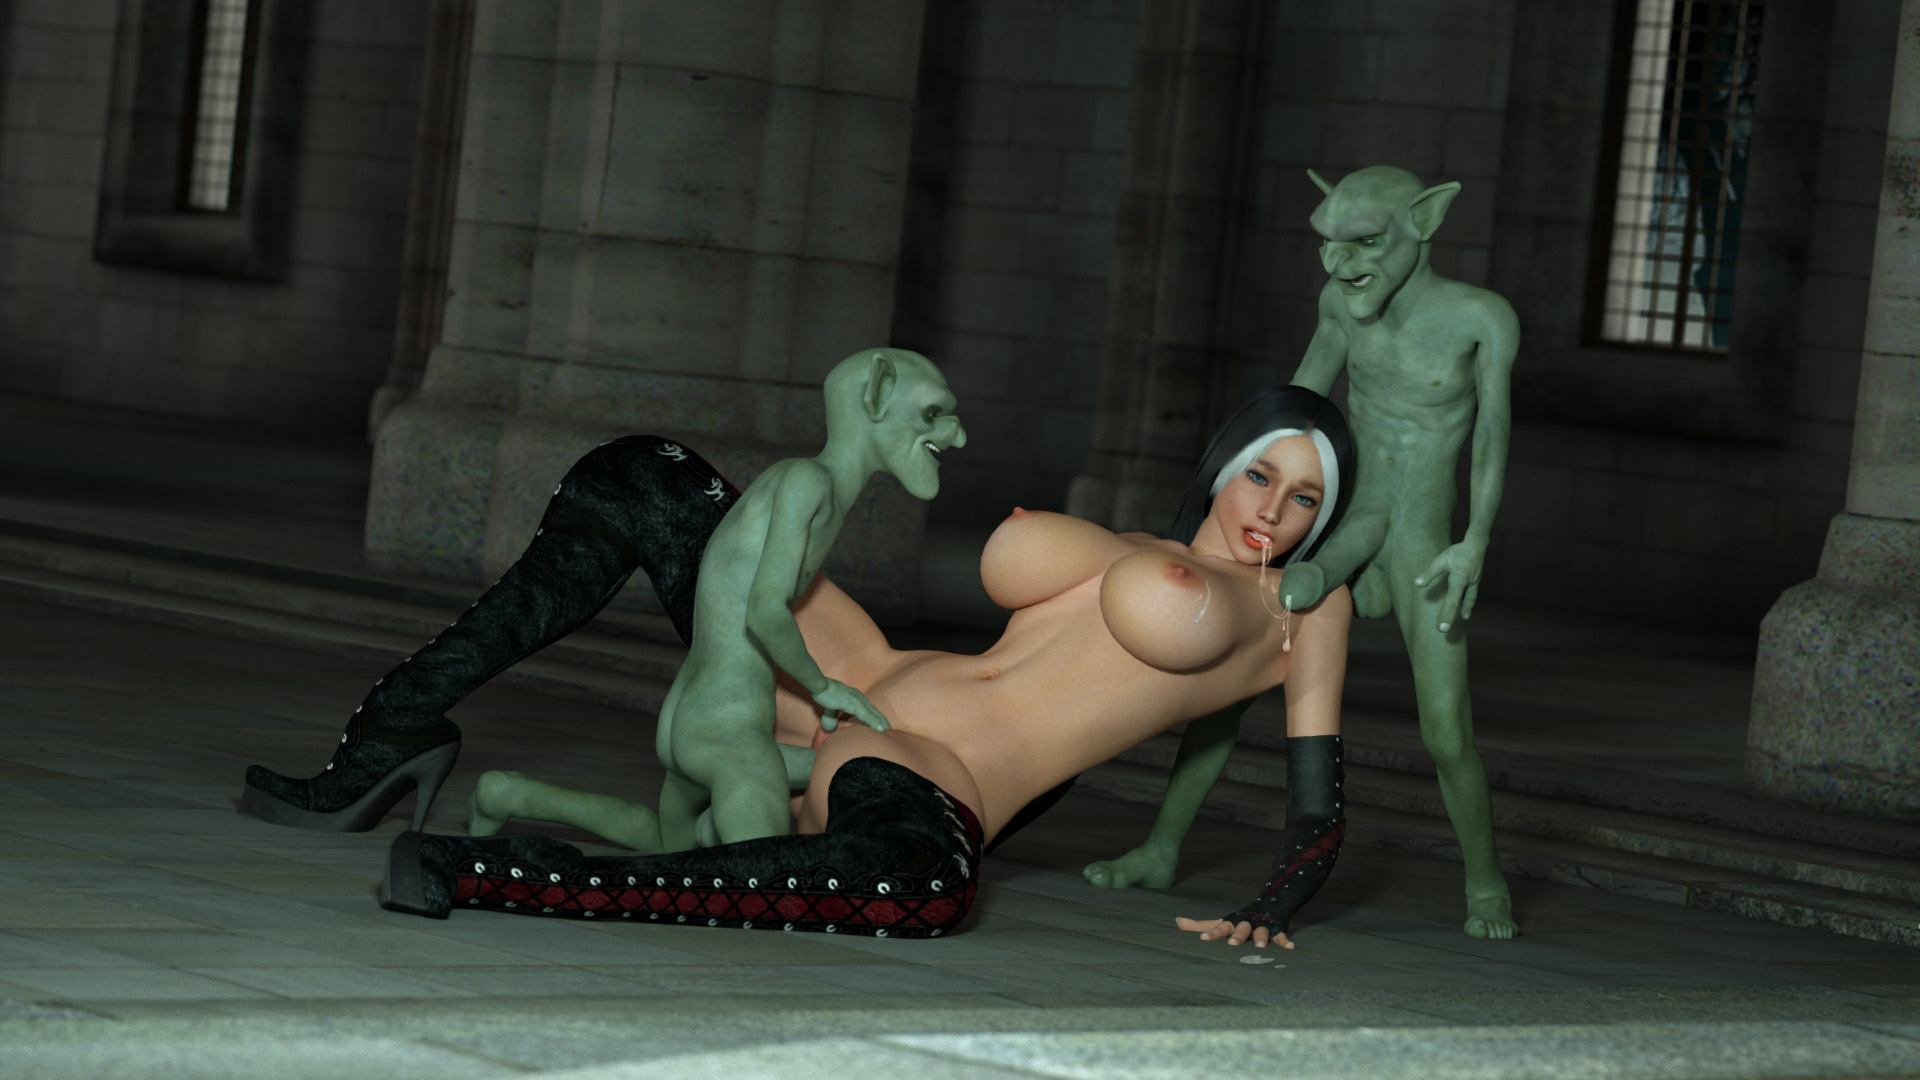 Nun 3d porn pics exposed scenes